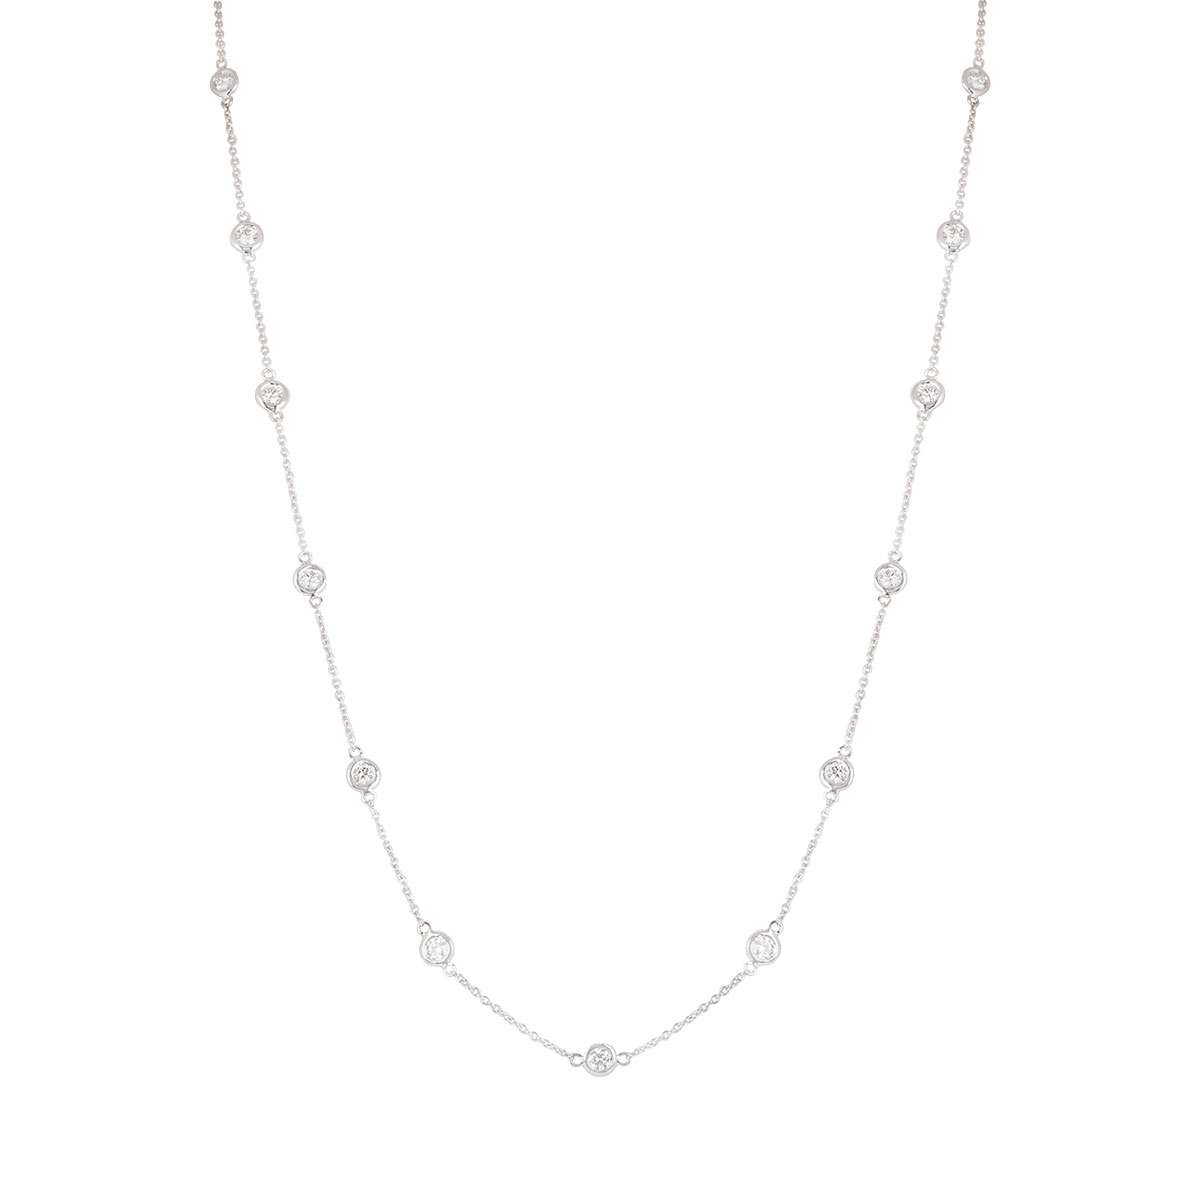 White Gold Diamond Necklace 2.31ct